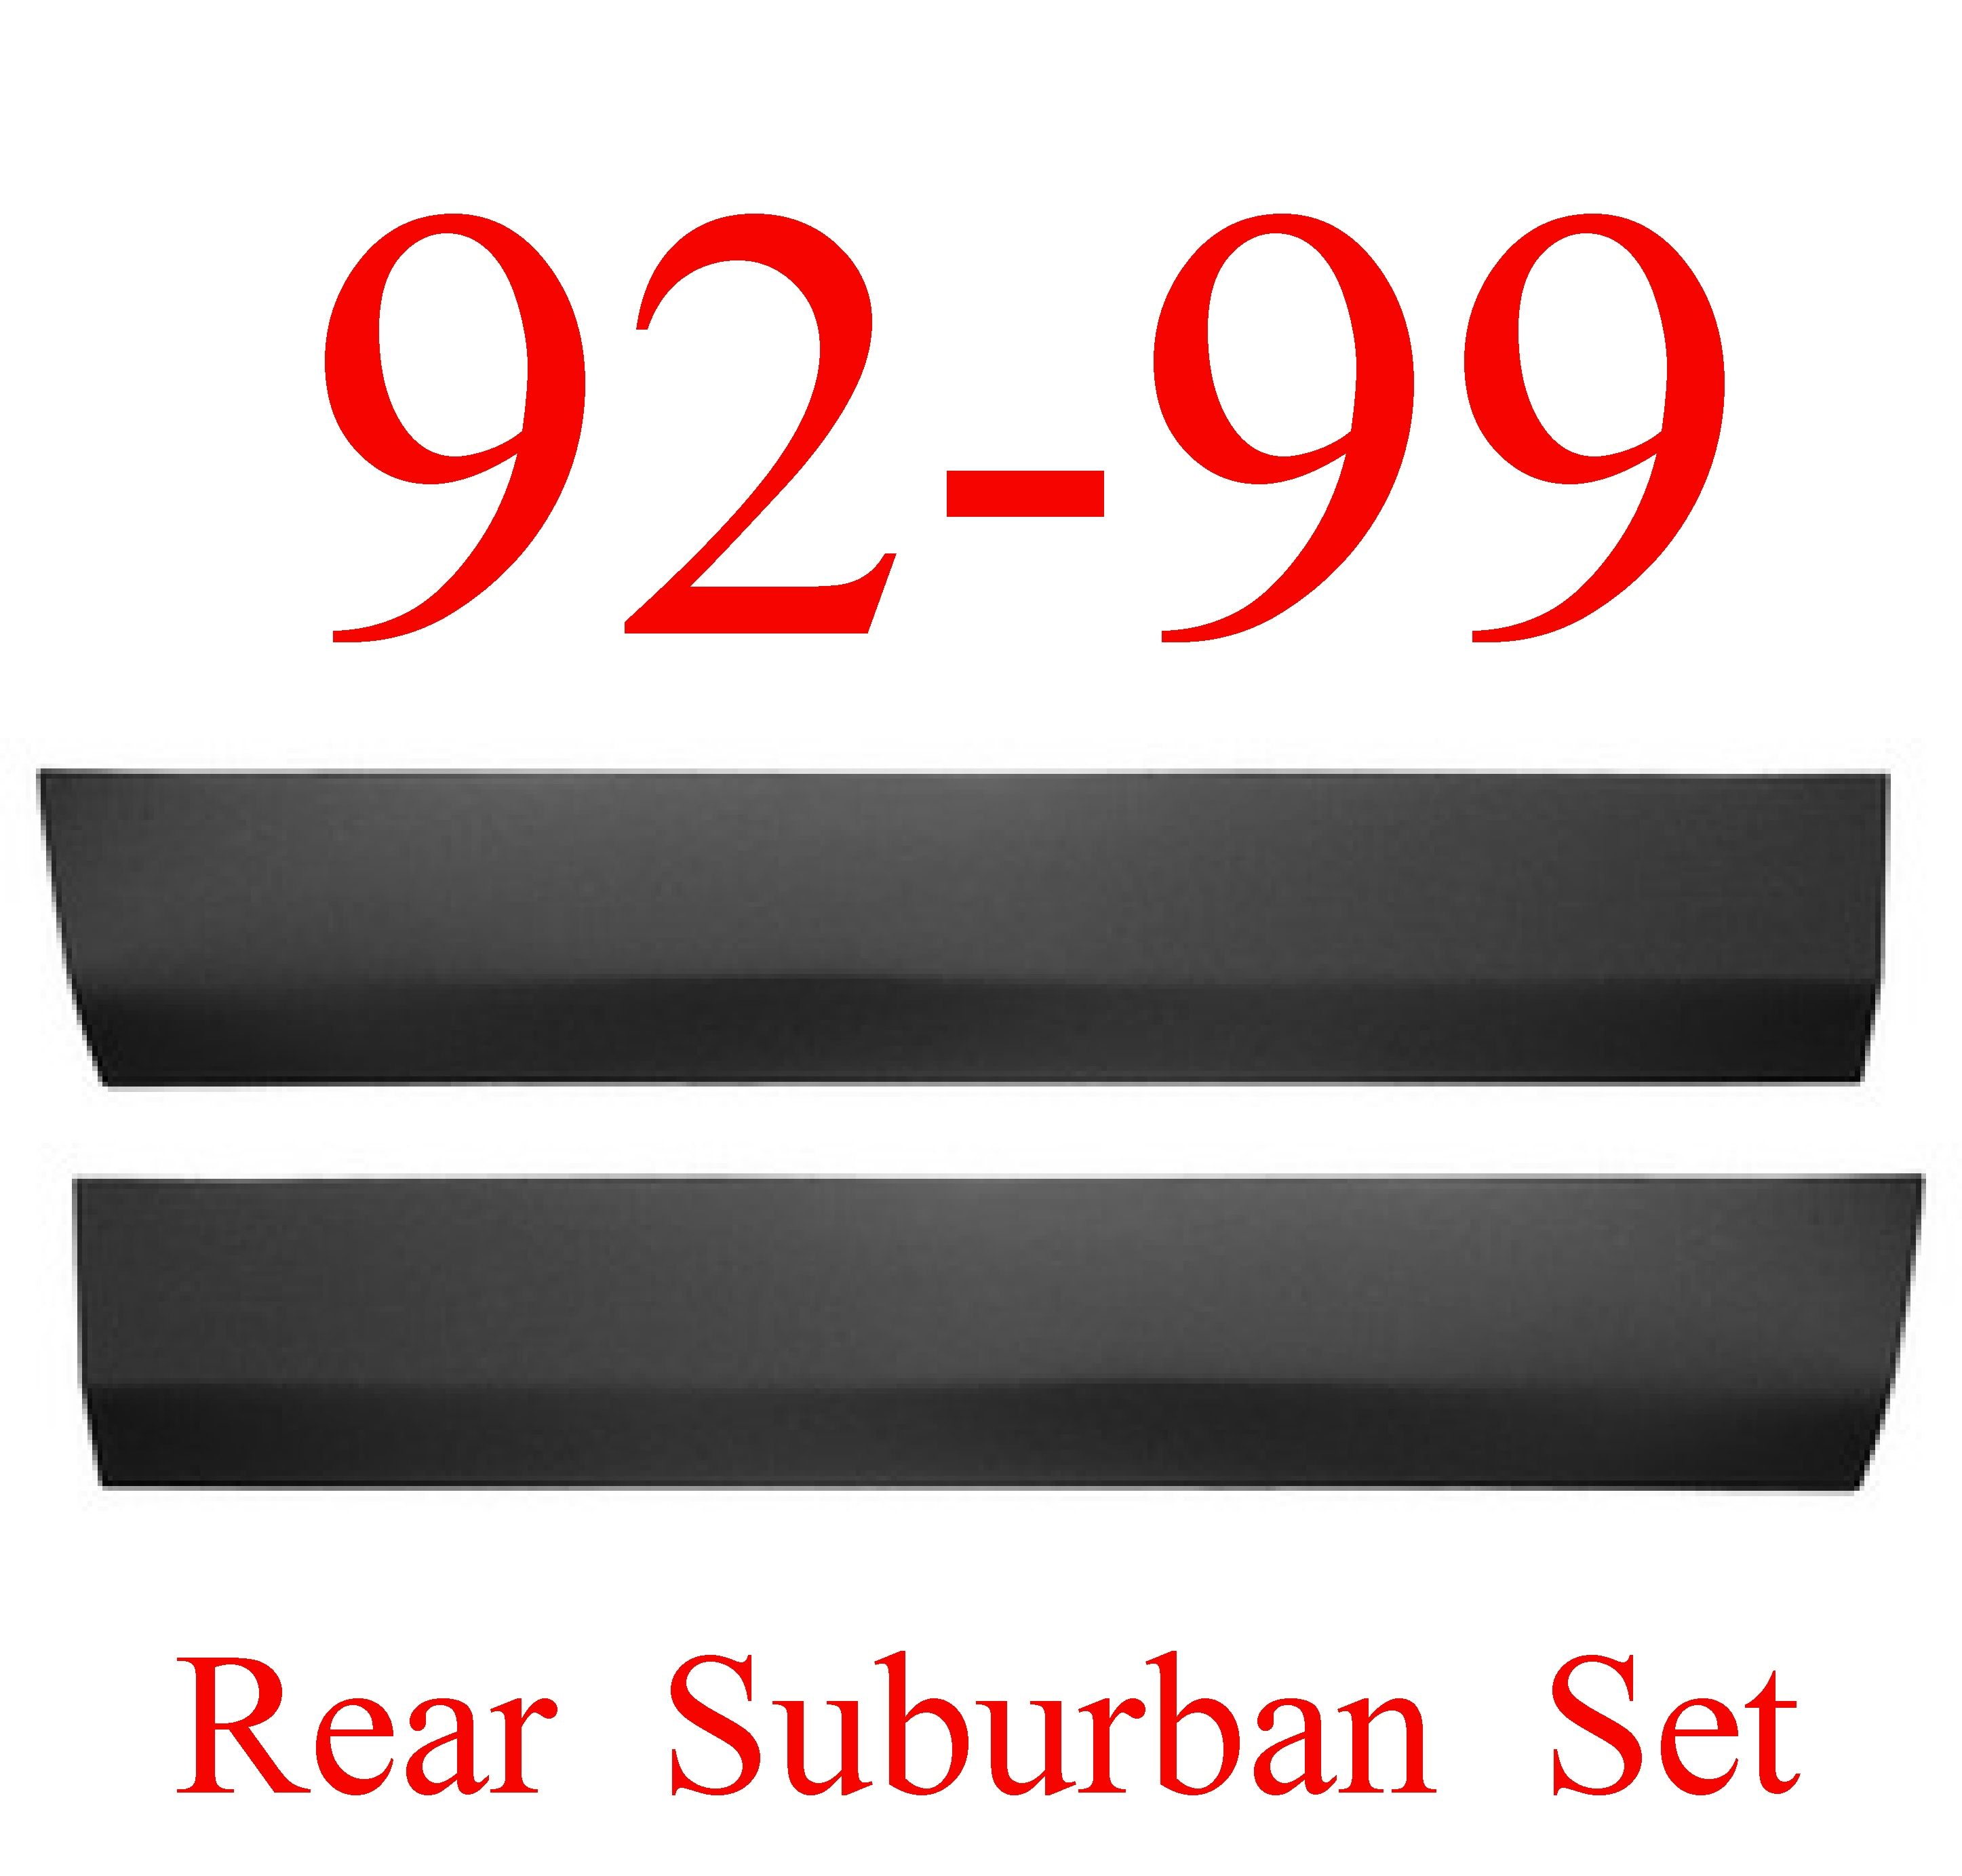 92-99 Chevy Suburban Rear Lower Door Skin SET